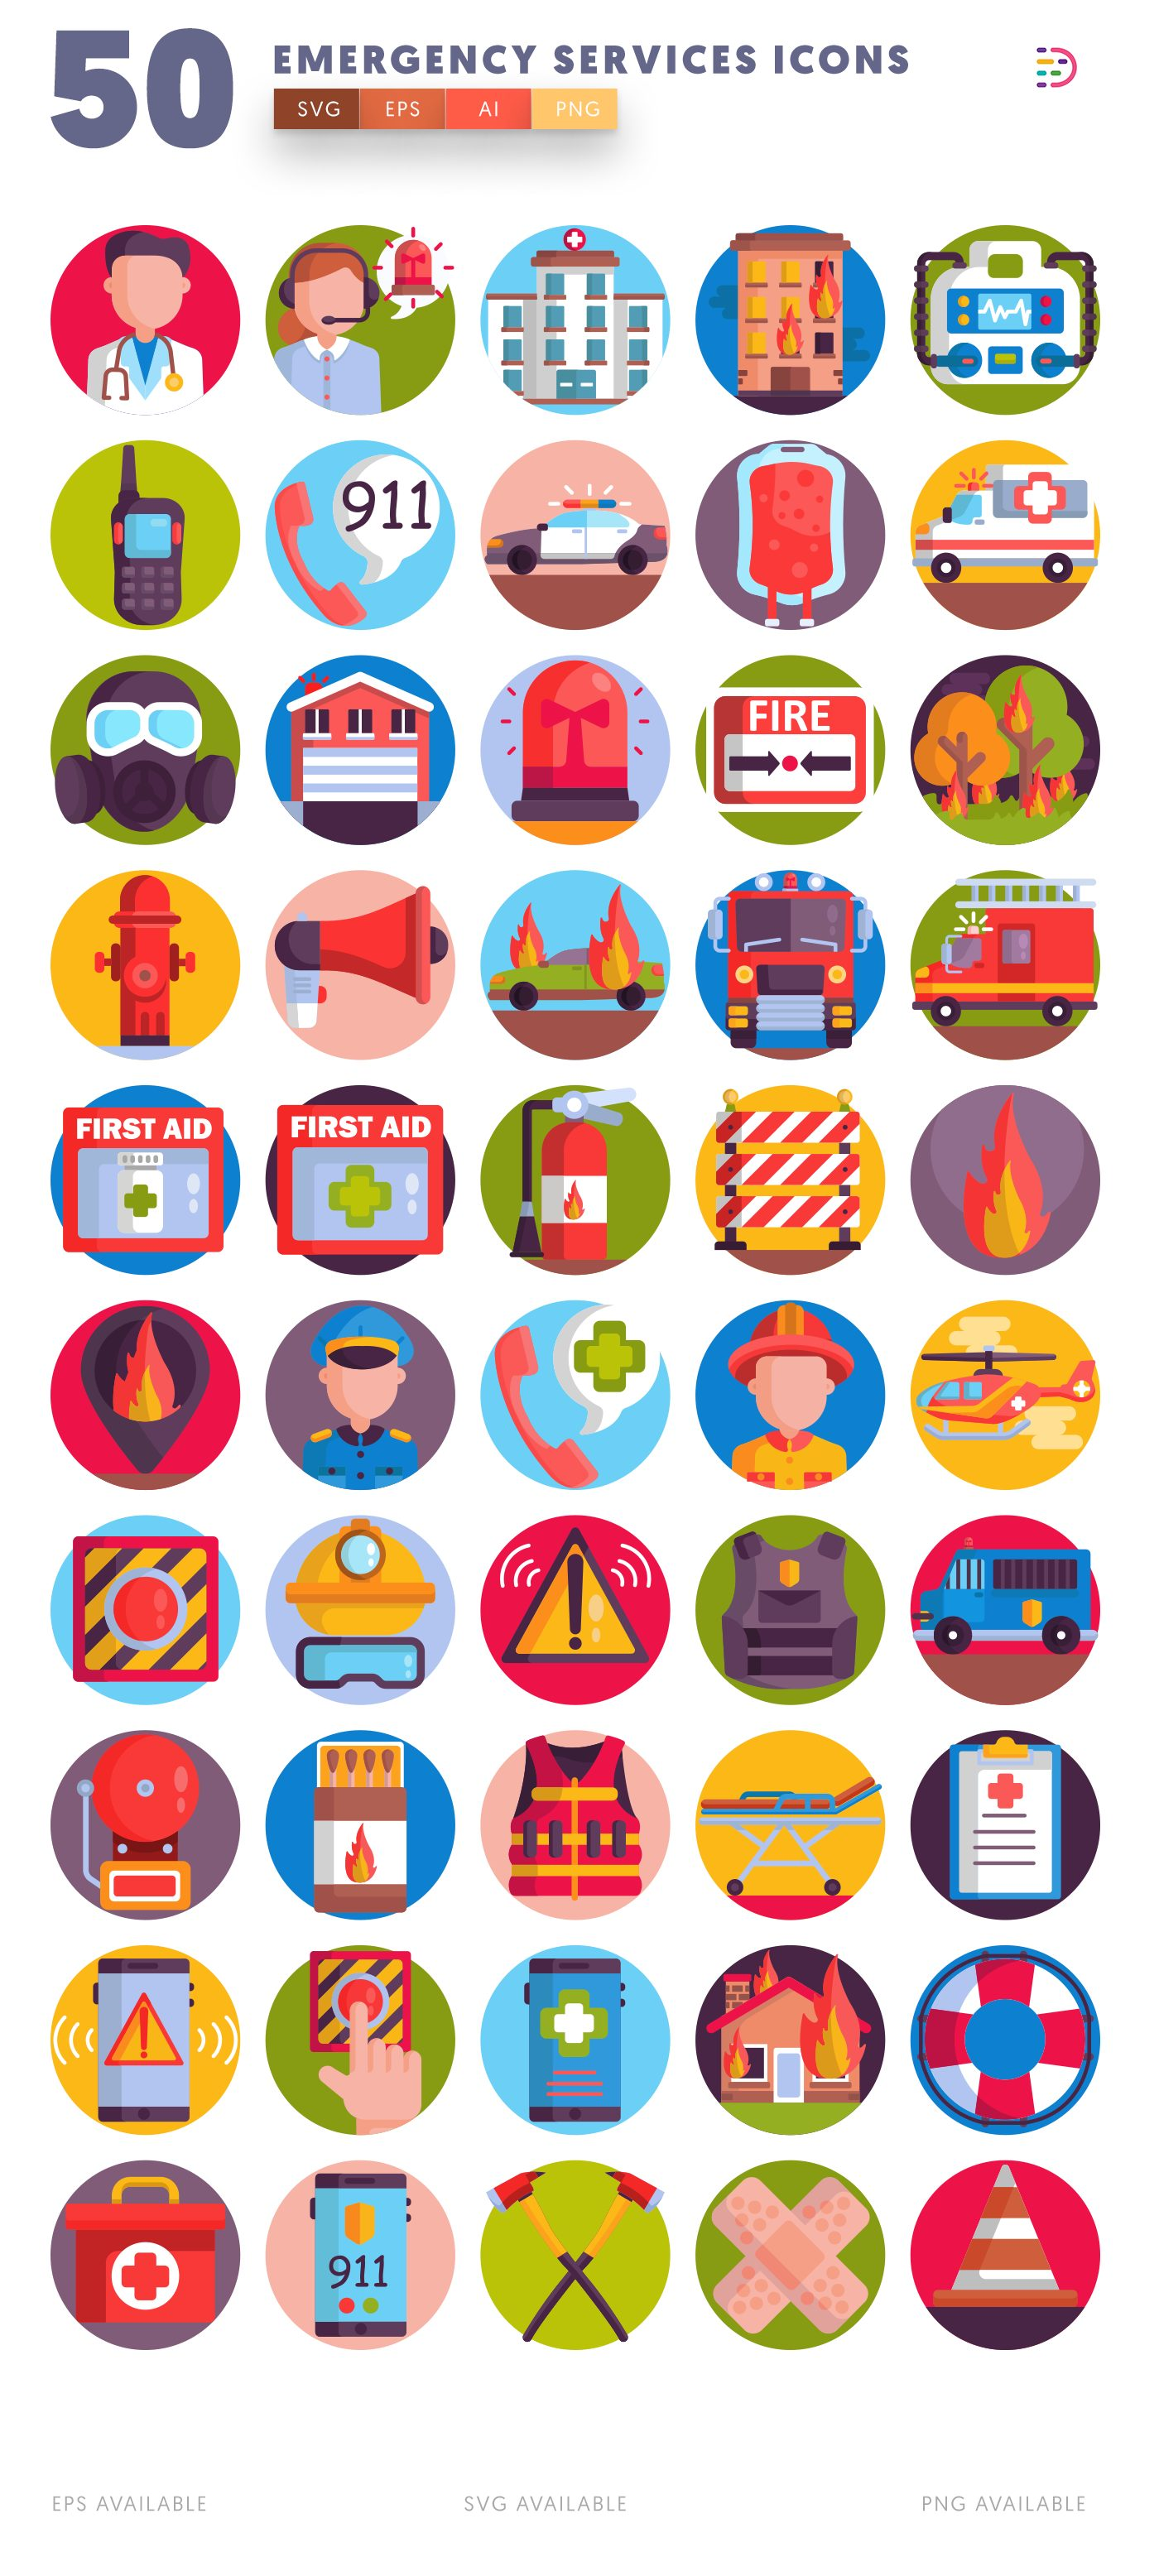 Emergency Services icon pack